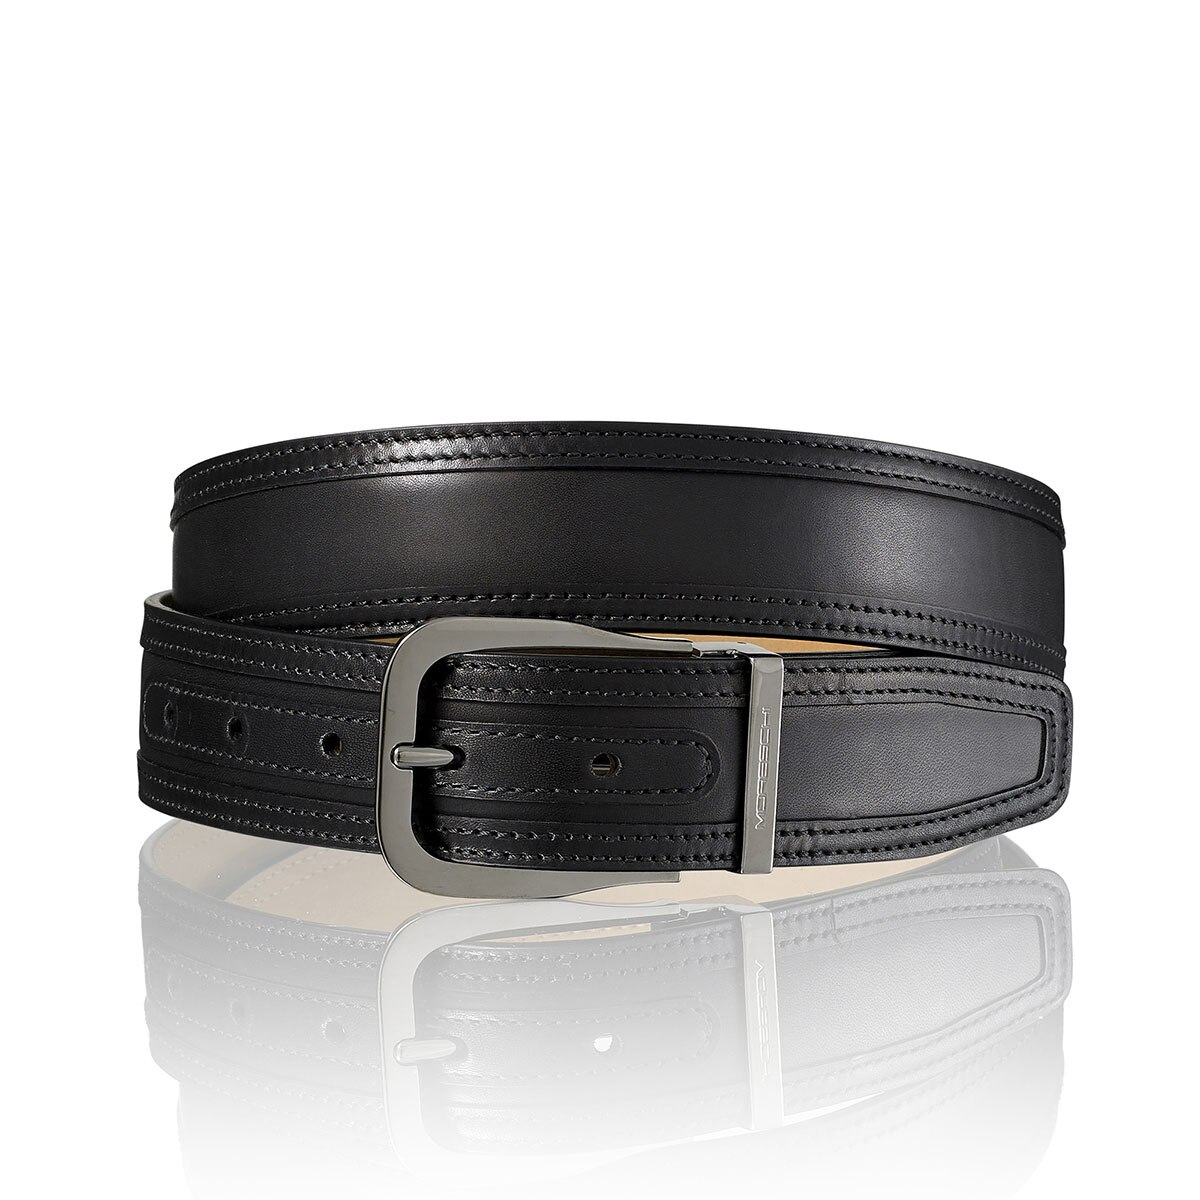 PORTOFINO Luxury Belt